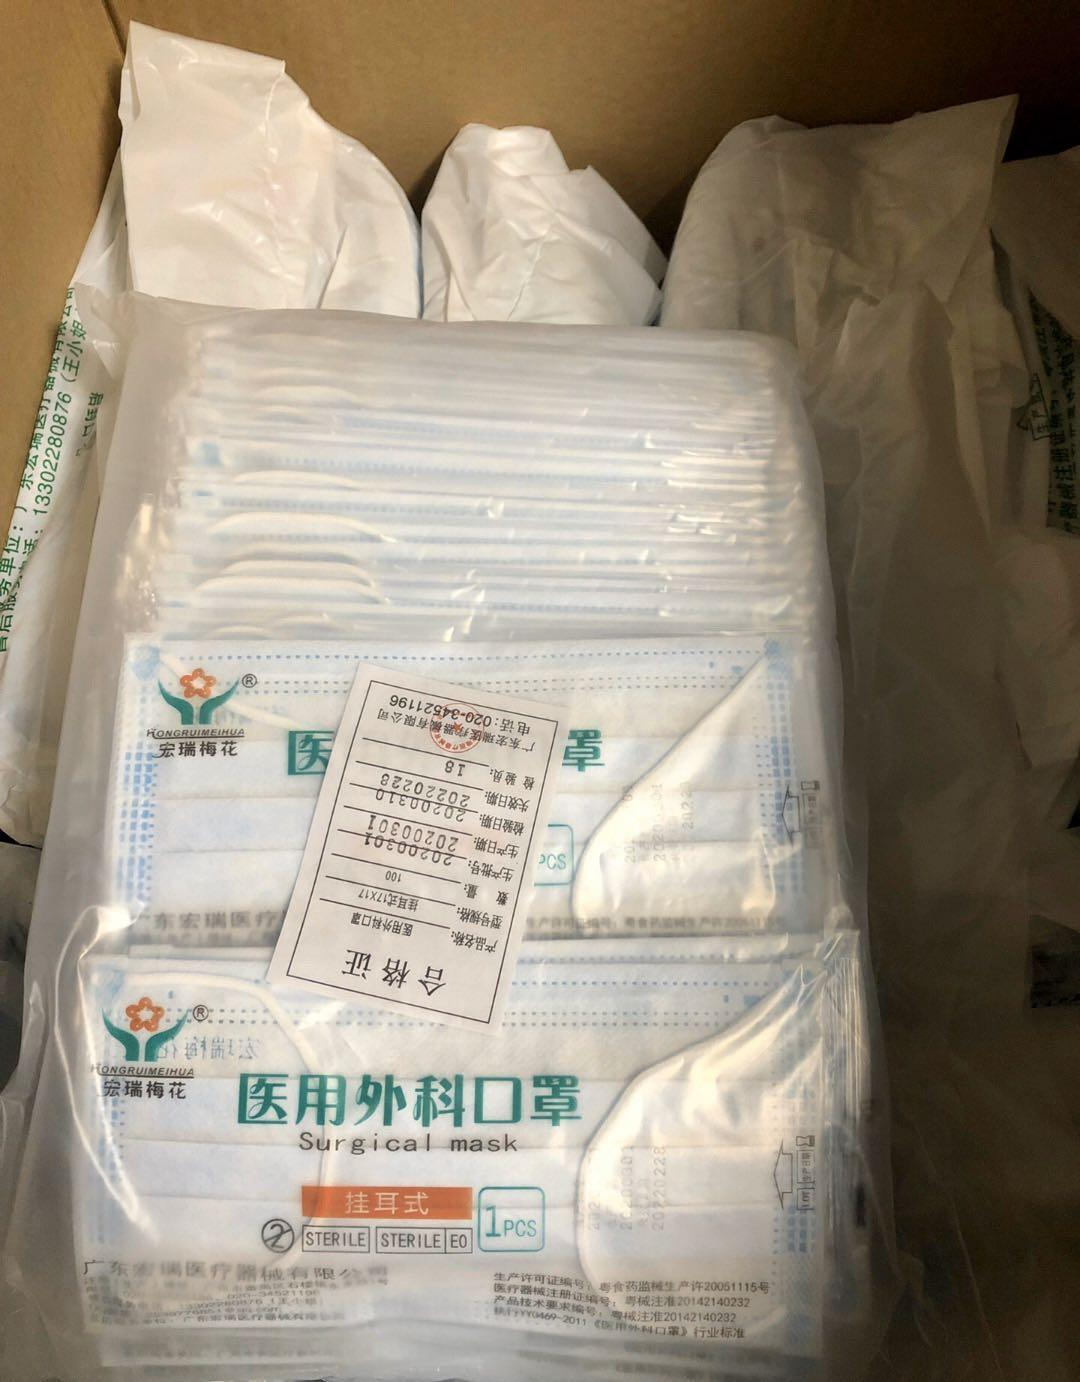 医用外科口罩 medical surgical mask can be exported overseas